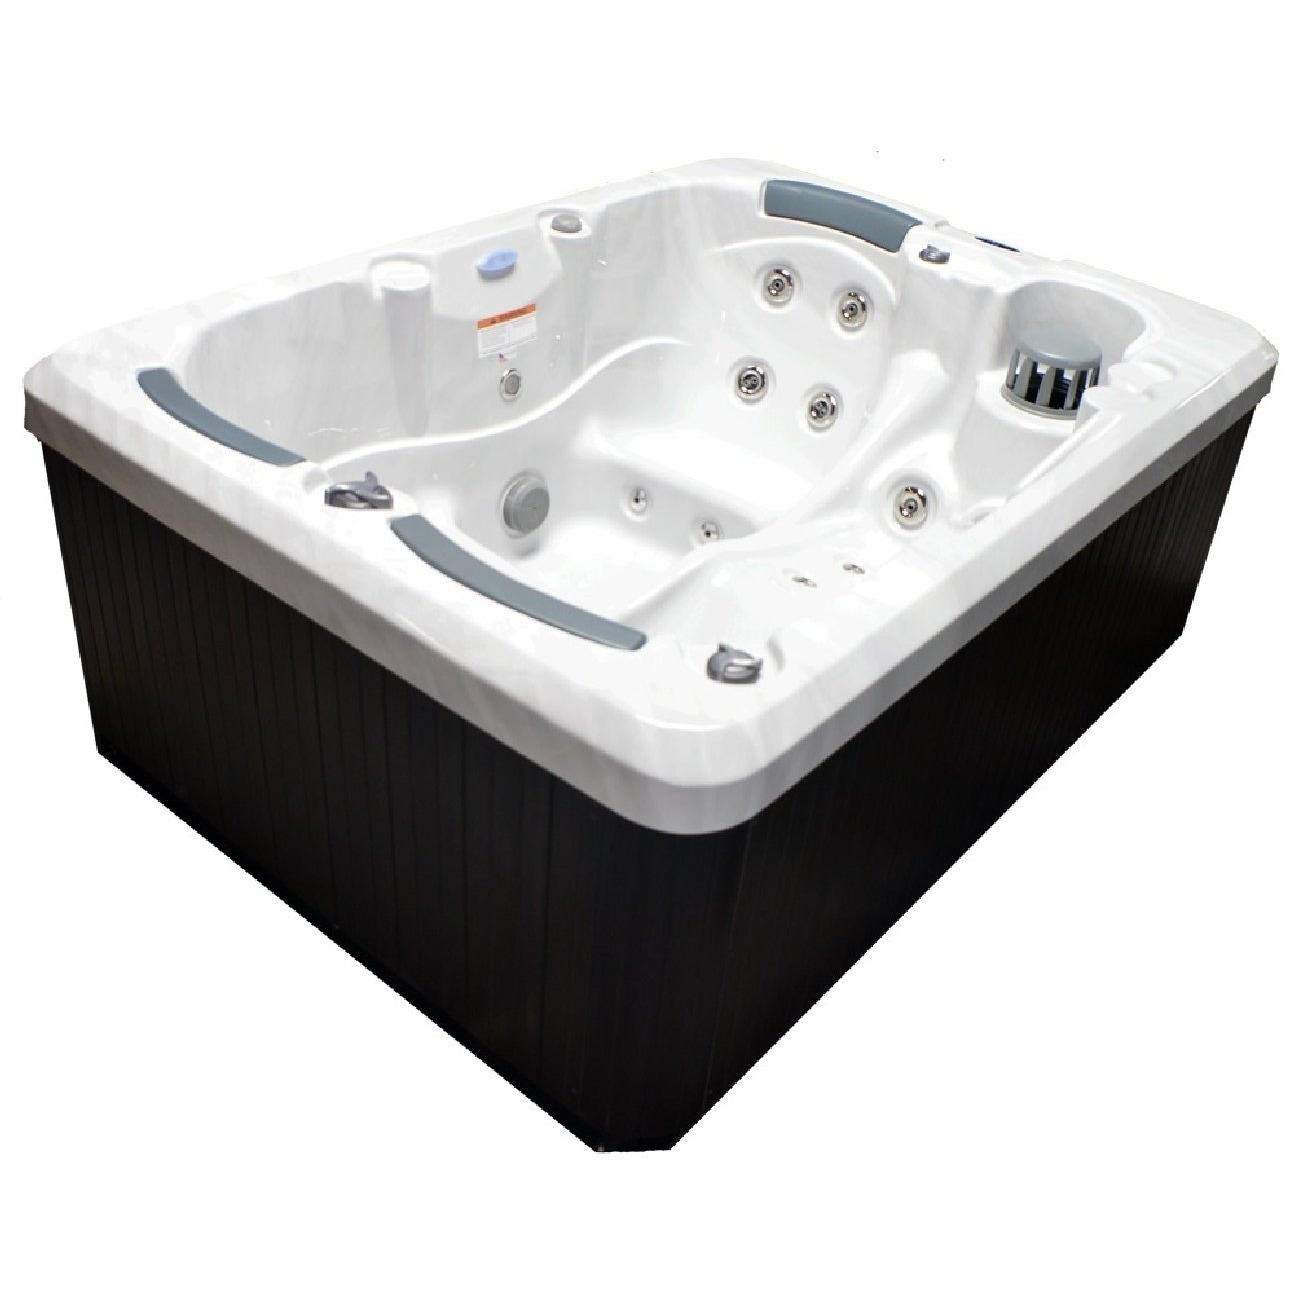 Home and Garden 3-person 38-jet Spa with Stainless Jets and Ozone ...